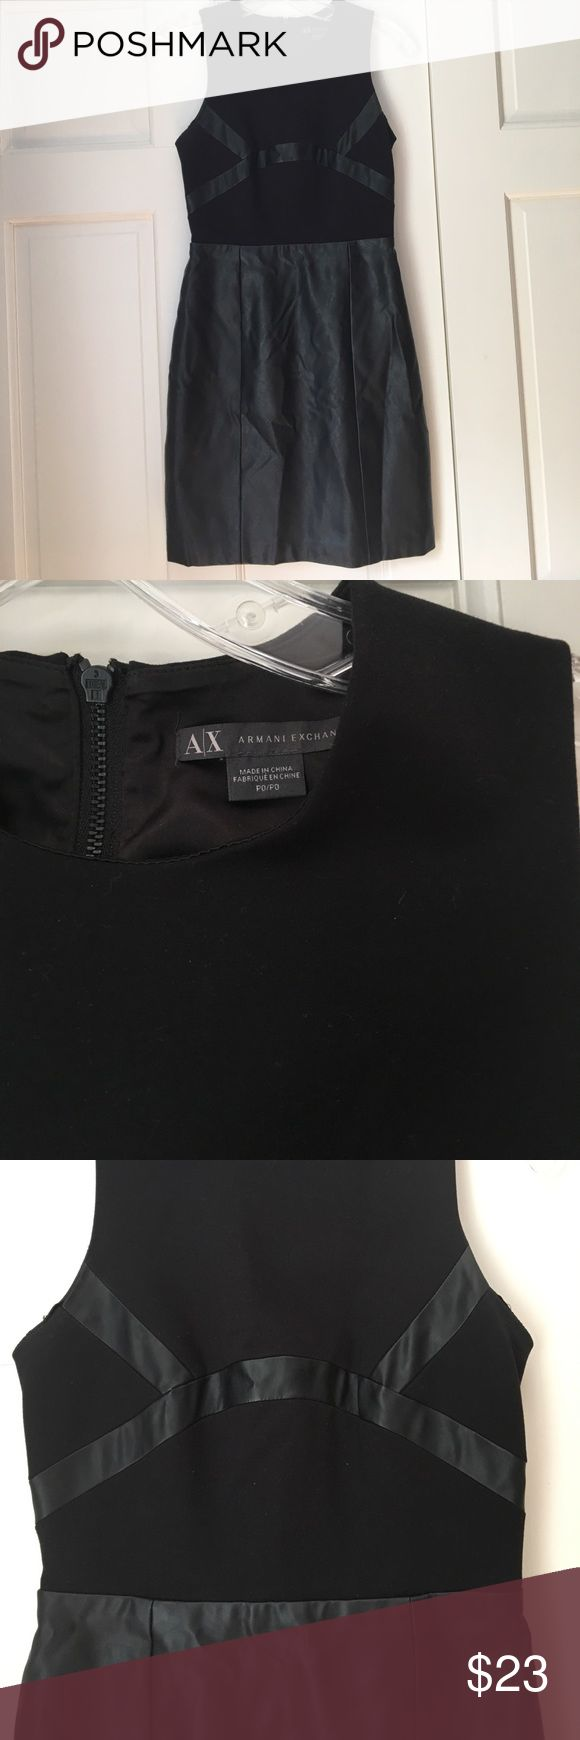 A/X Armani Exchange Black Faux Leather Dress A/X Armani Exchange Black Faux Leather Dress. Black dress with faux leather skirt and detailing at waist. A sleek dress for a night out. Worn, but in good condition. Petite 0. A/X Armani Exchange Dresses Mini